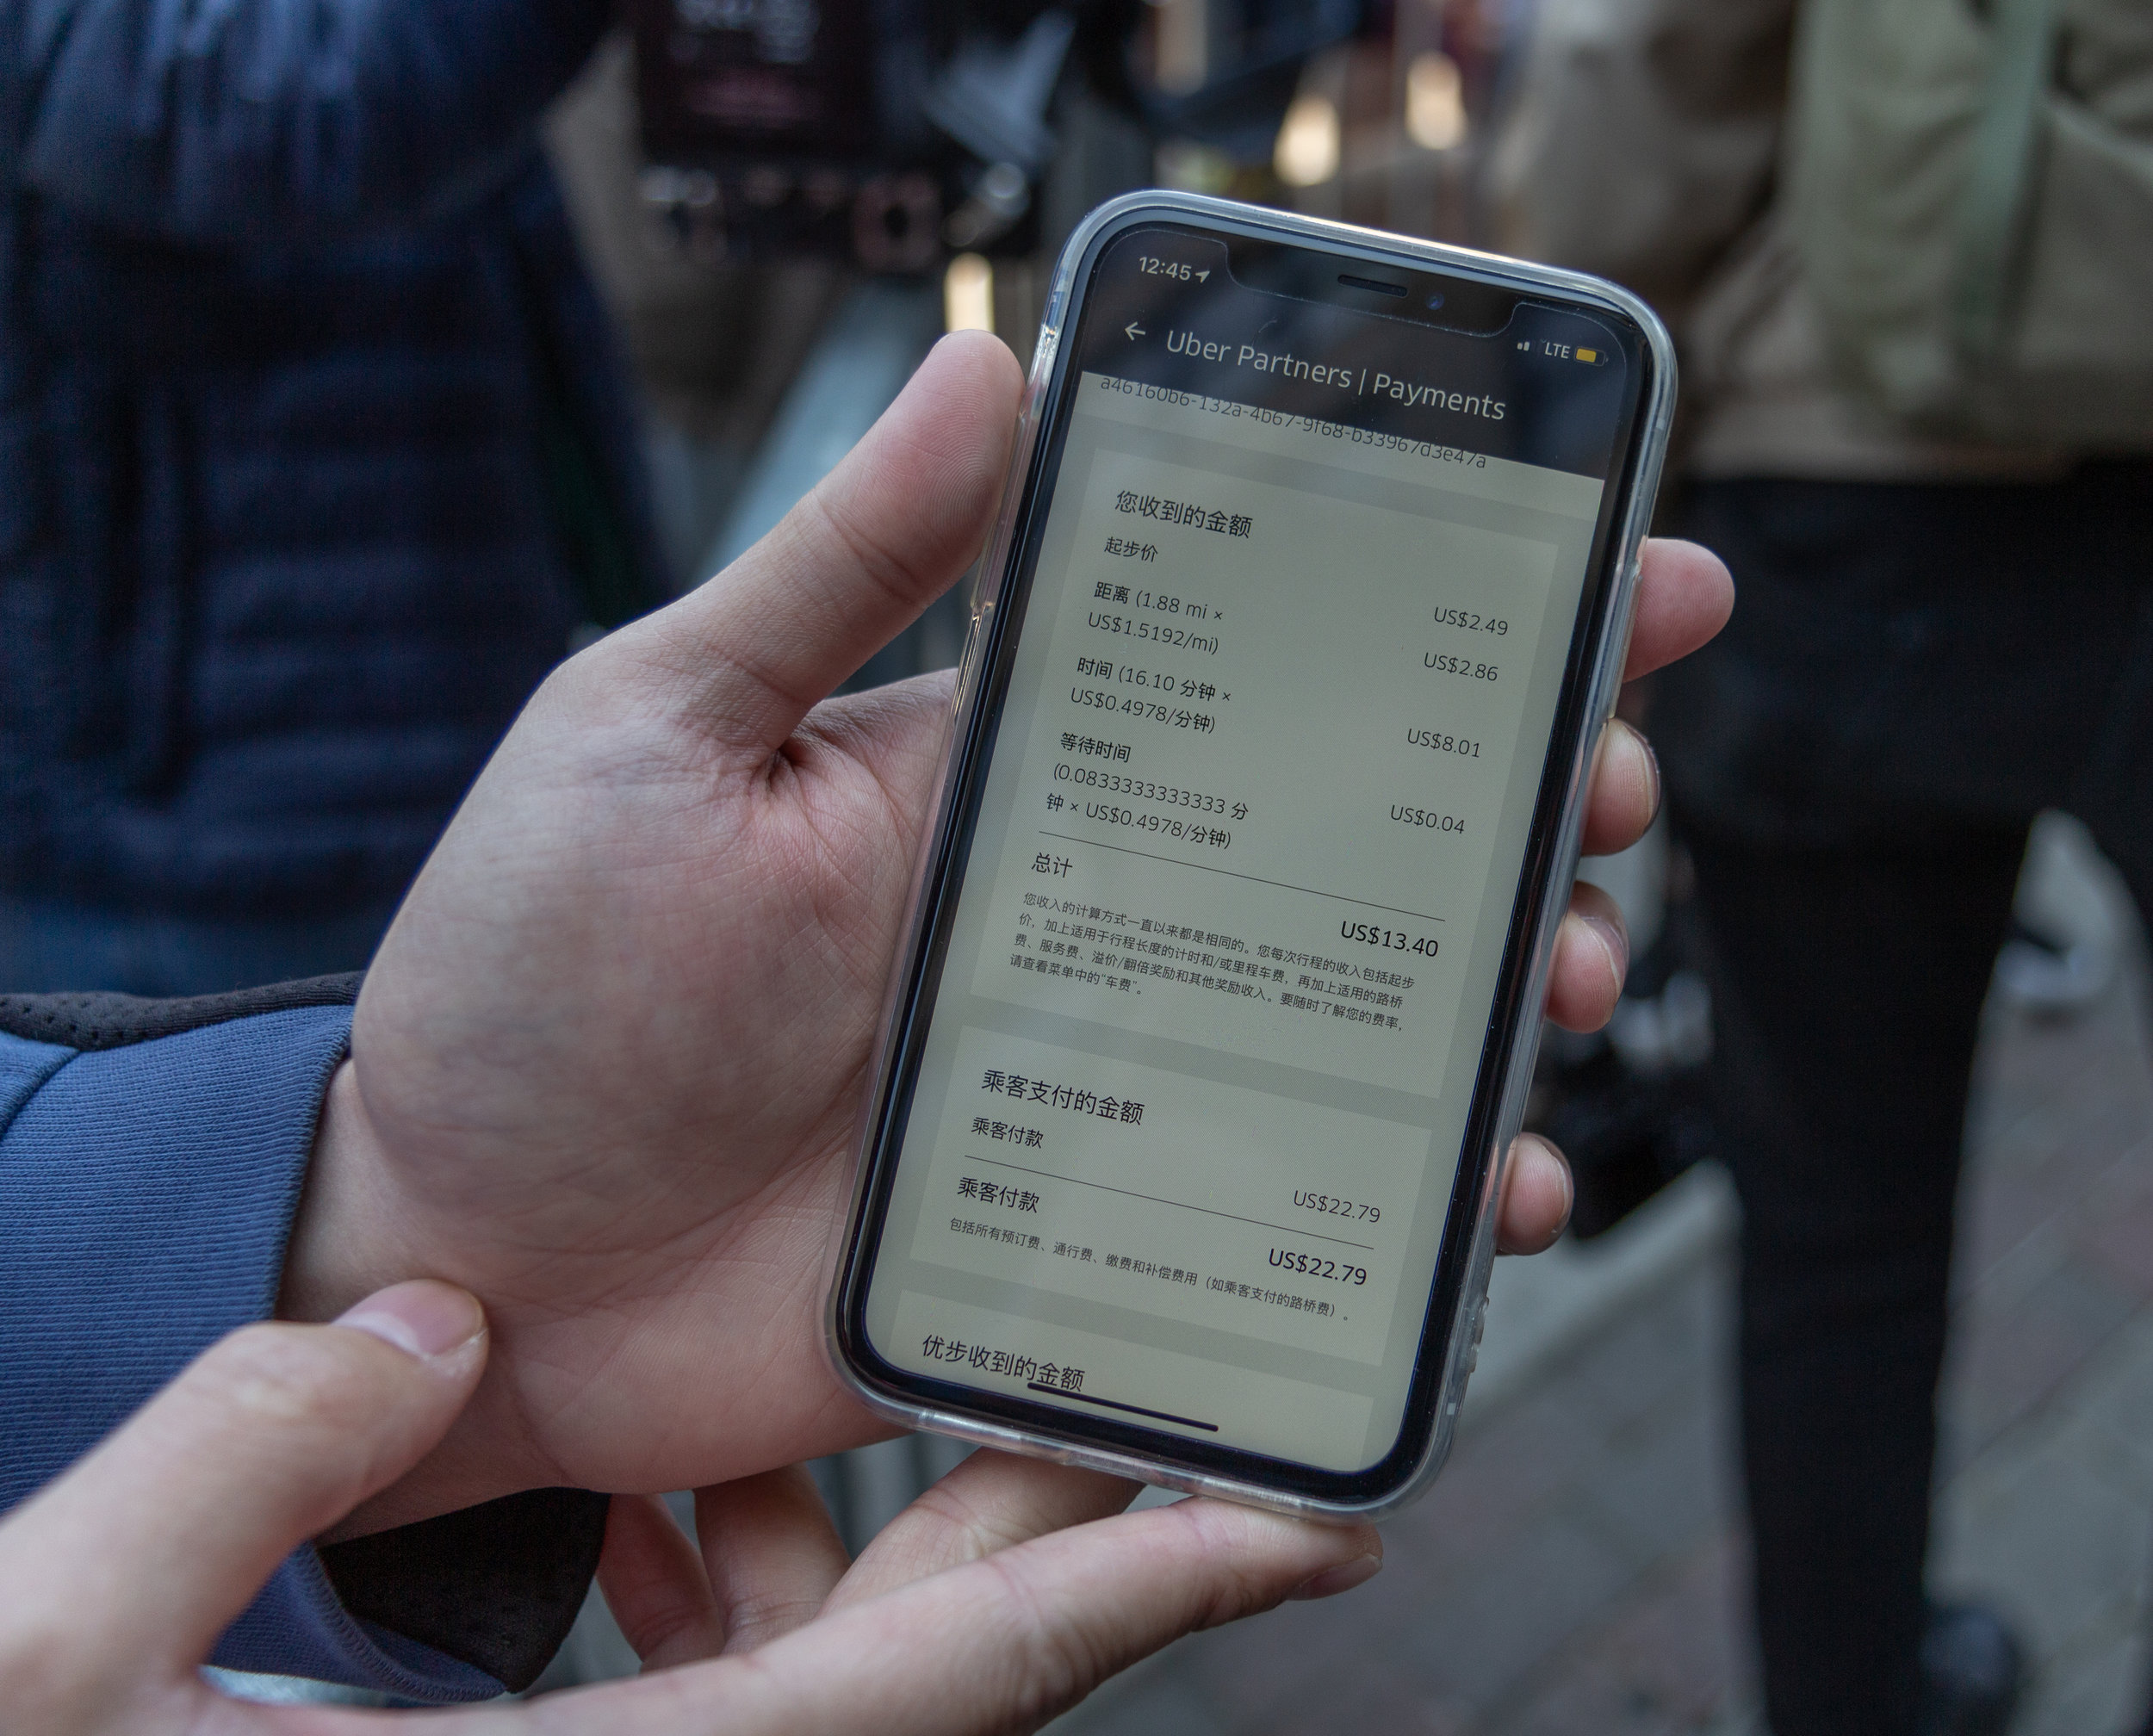 Leo Liang shows the Eagle his recent Uber payment history. On a recent 2-mile-long trip through midtown Manhattan, Liang pocketed $13.40, while the passenger paid Uber $22.79, a difference of more than 41 percent.